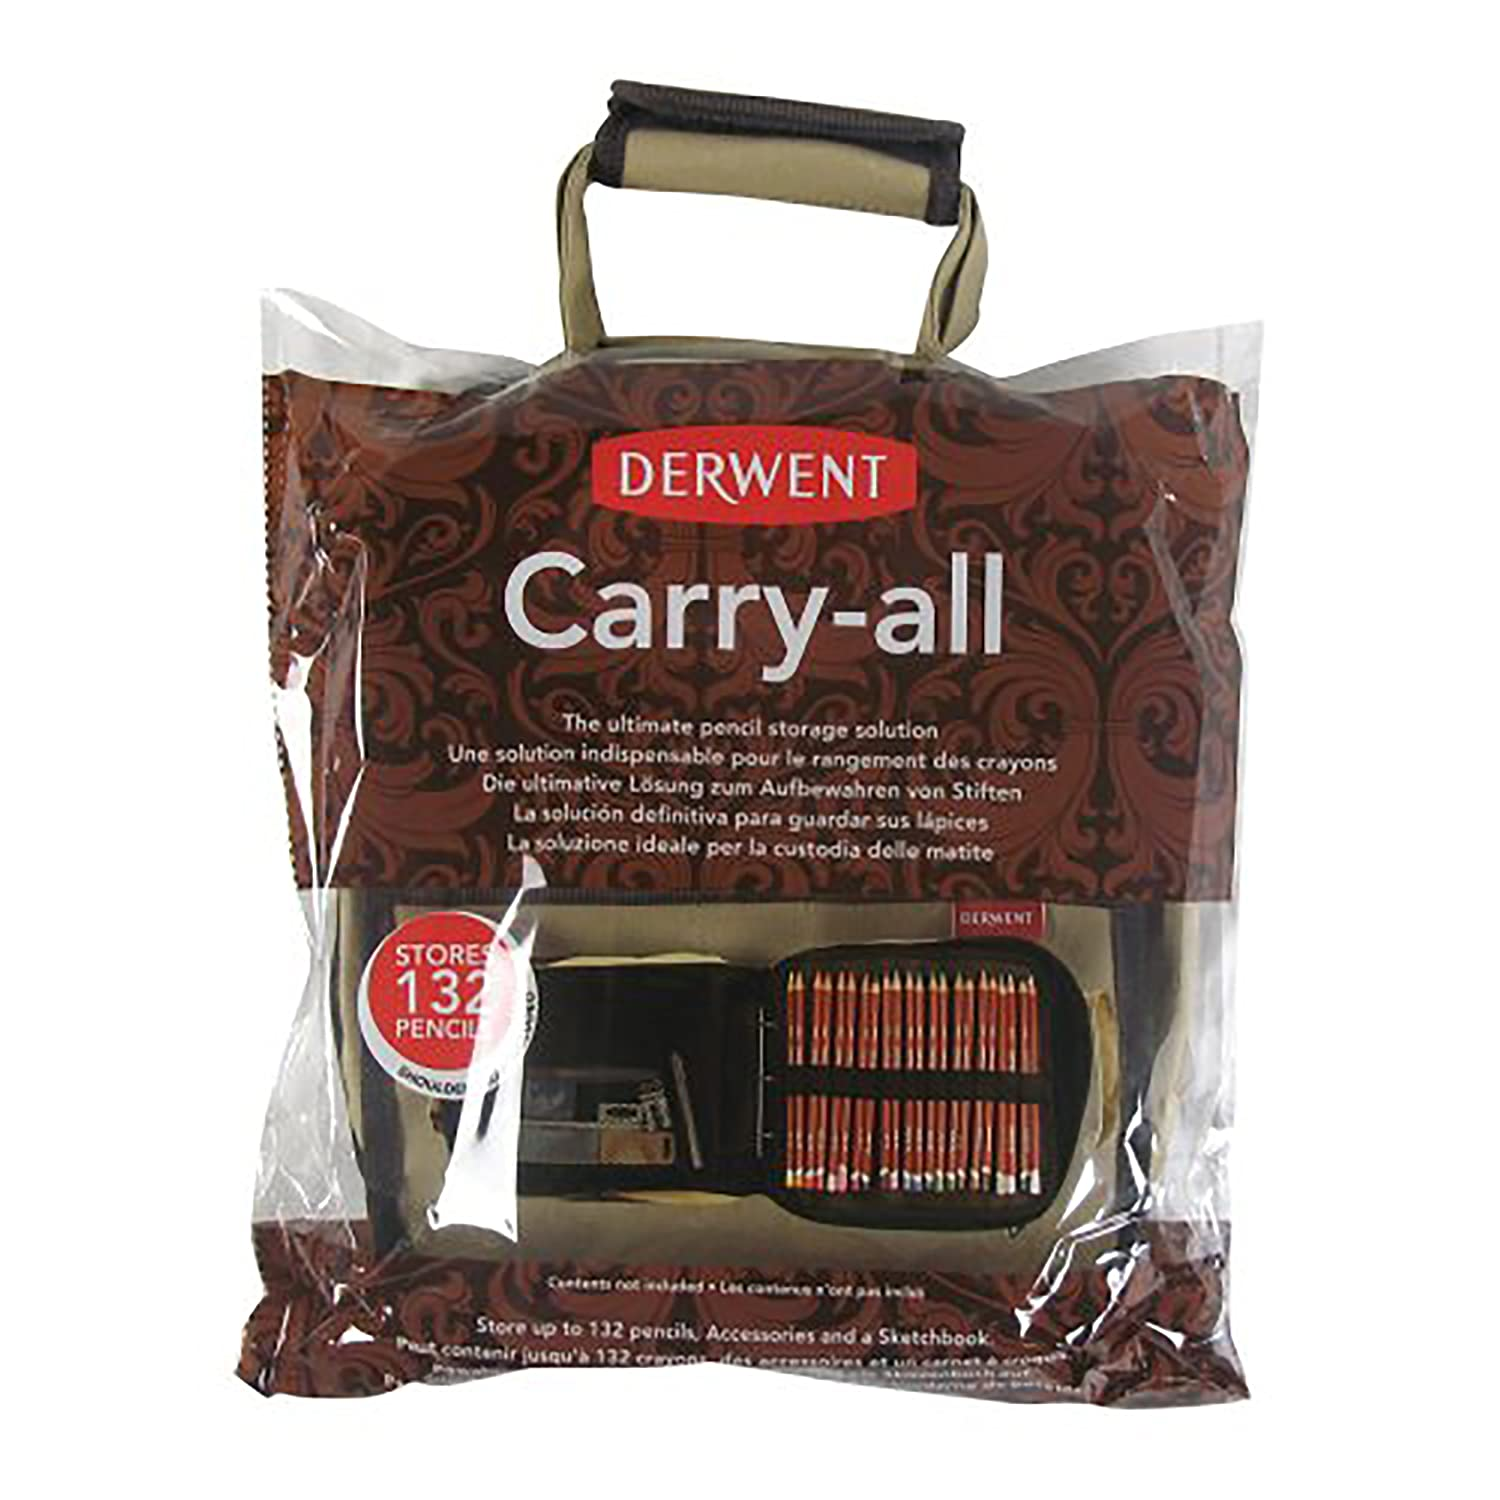 Derwent Pencil Case, Canvas Carry-All Bag Pencil Holder with Removable Shoulder Strap, Holds up to 132 Pencils and Supplies (2300671)